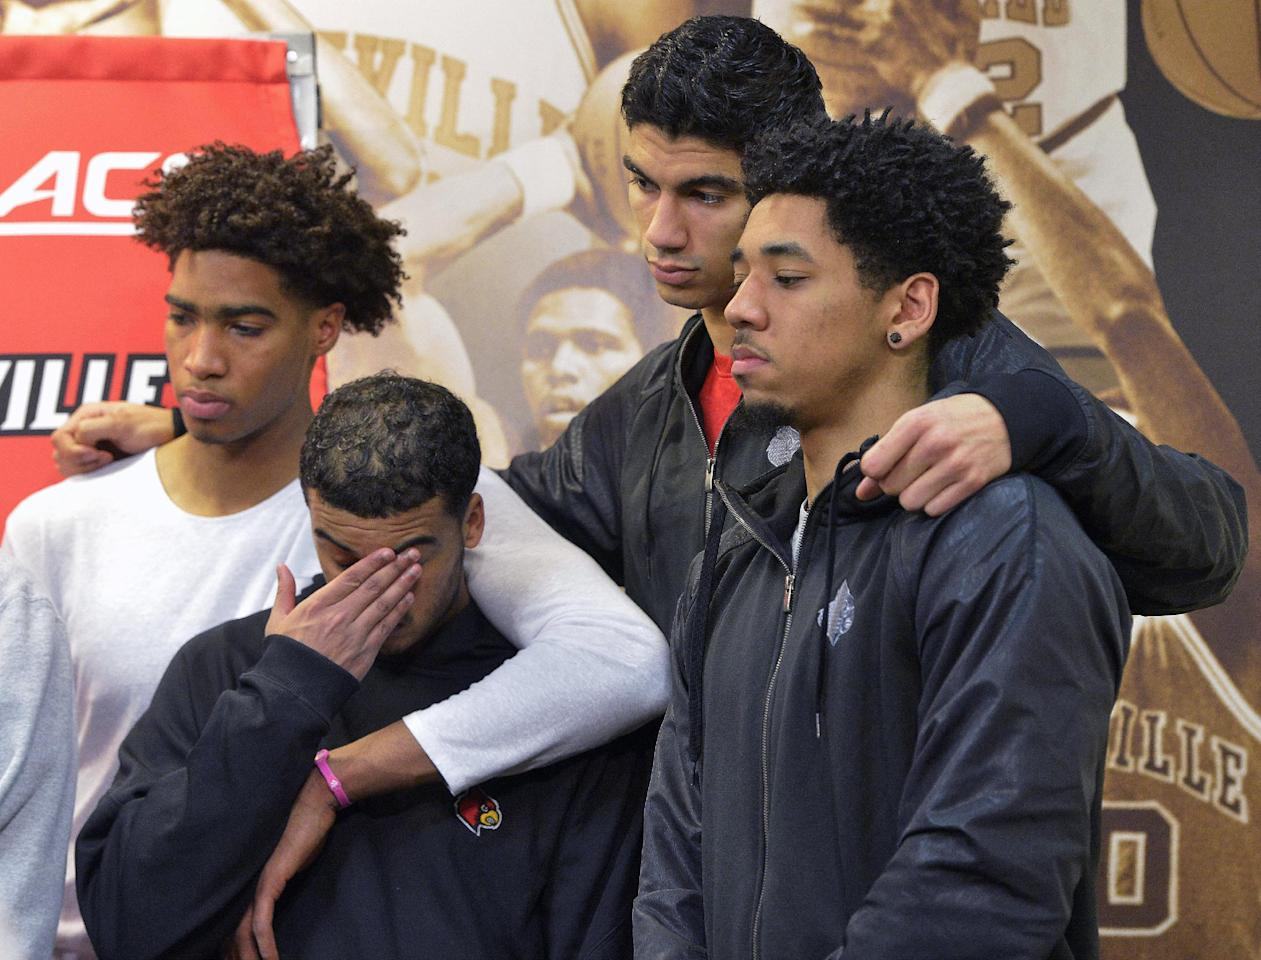 From left, Louisville players Ray Spalding, Quentin Snider, Anas Mahmoud, and Jay Henderson listen to teammates Damion Lee and Trey Lewis during a news conference Friday, Feb. 5, 2016, in Louisville Ky. The university president announced earlier in the day a one-year postseason ban for the Cardinals men's basketball team amid ongoing investigations into a sex scandal. (AP Photo/Timothy D. Easley)